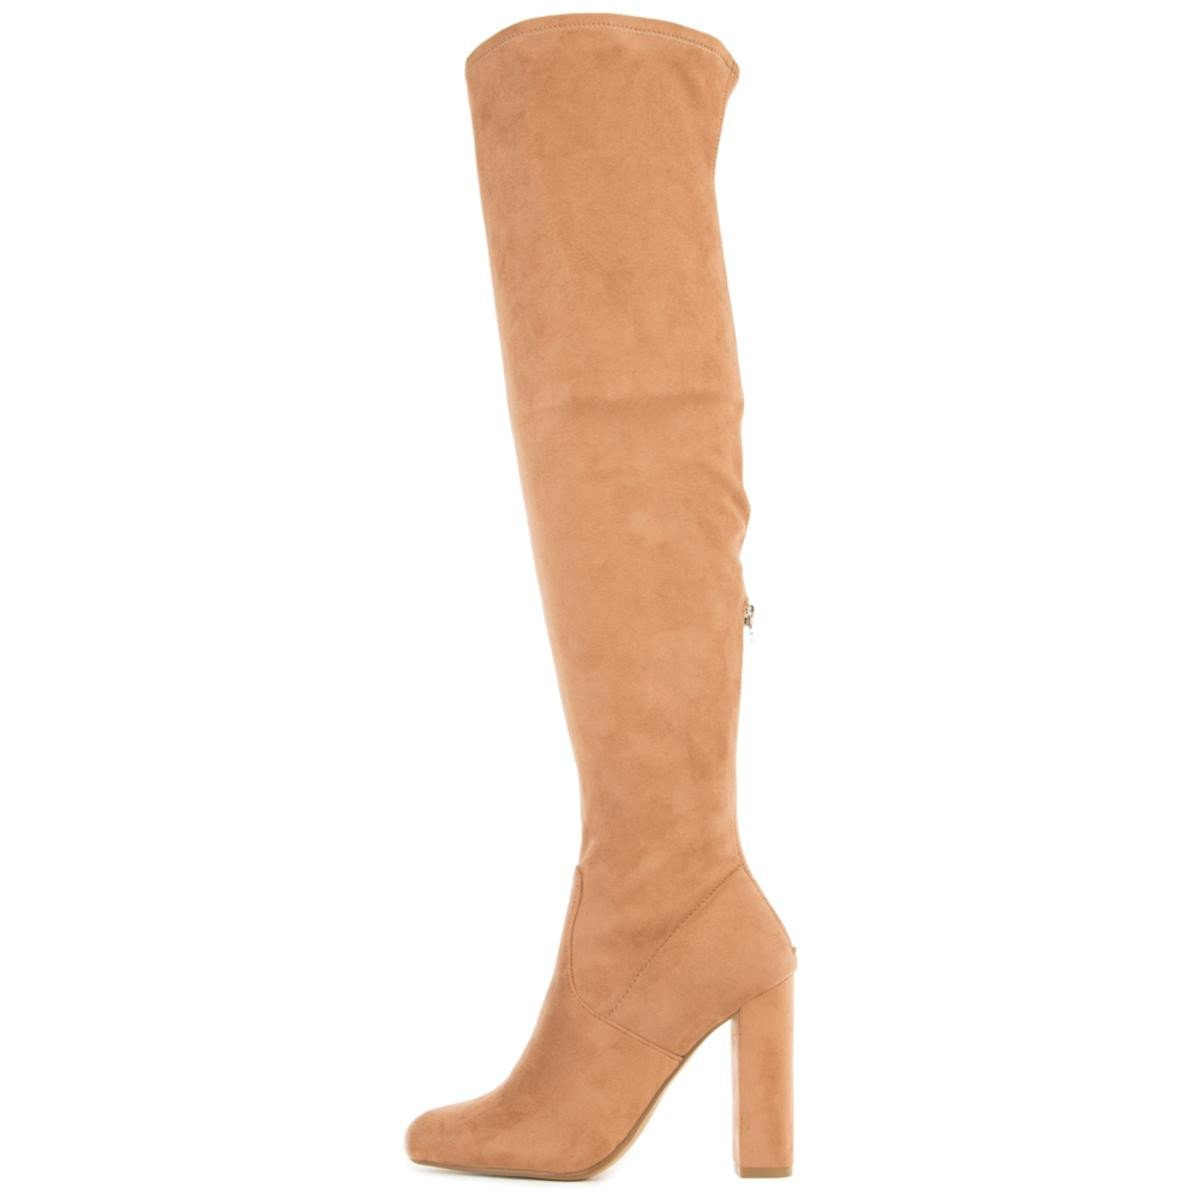 Steve Madden for Women: Emotions Camel Thigh High Heeled Boots